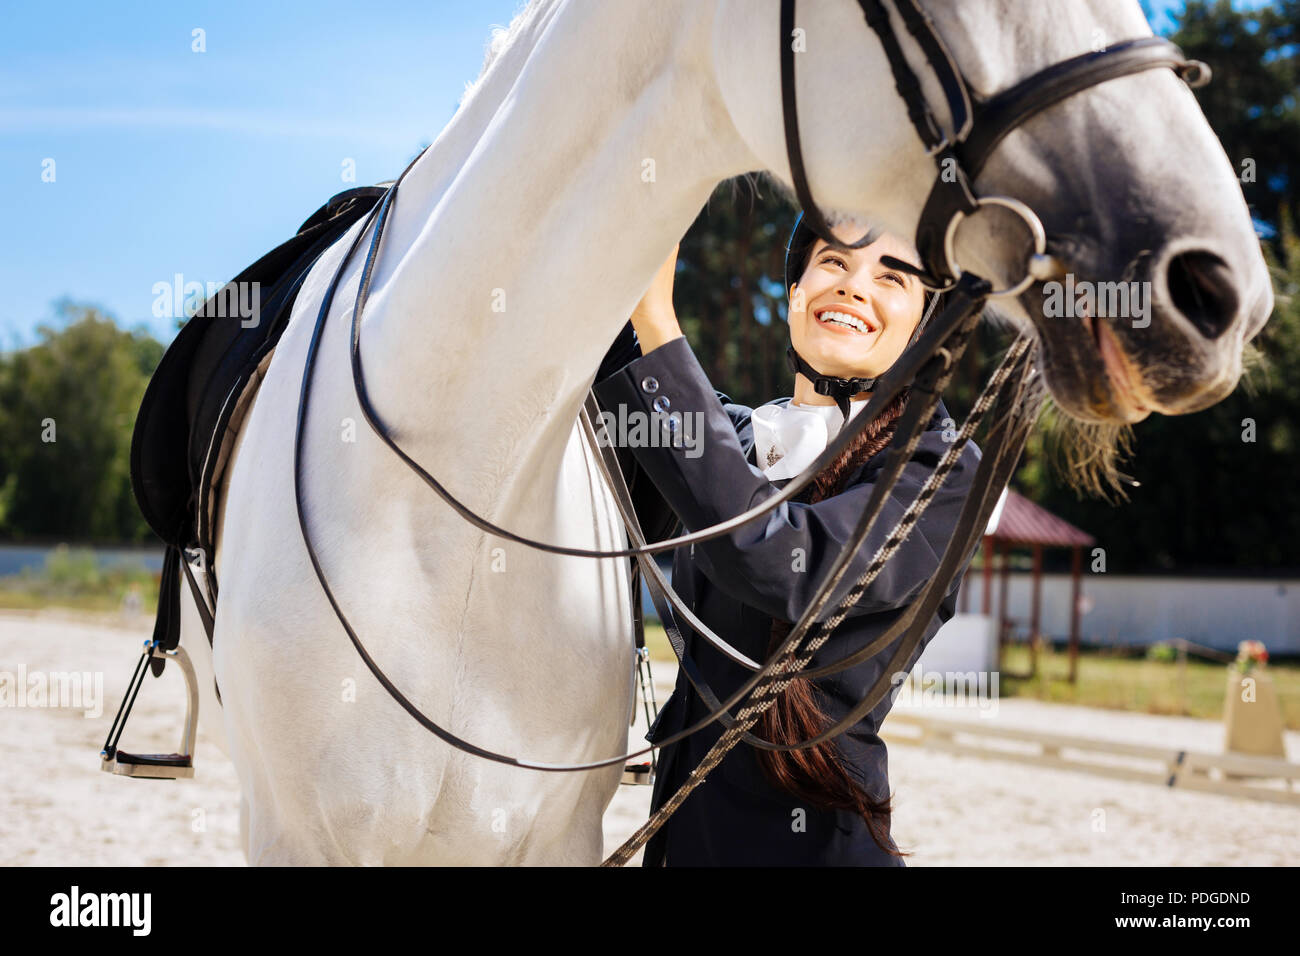 Dark-haired female rider with long braid taking care of her horse - Stock Image